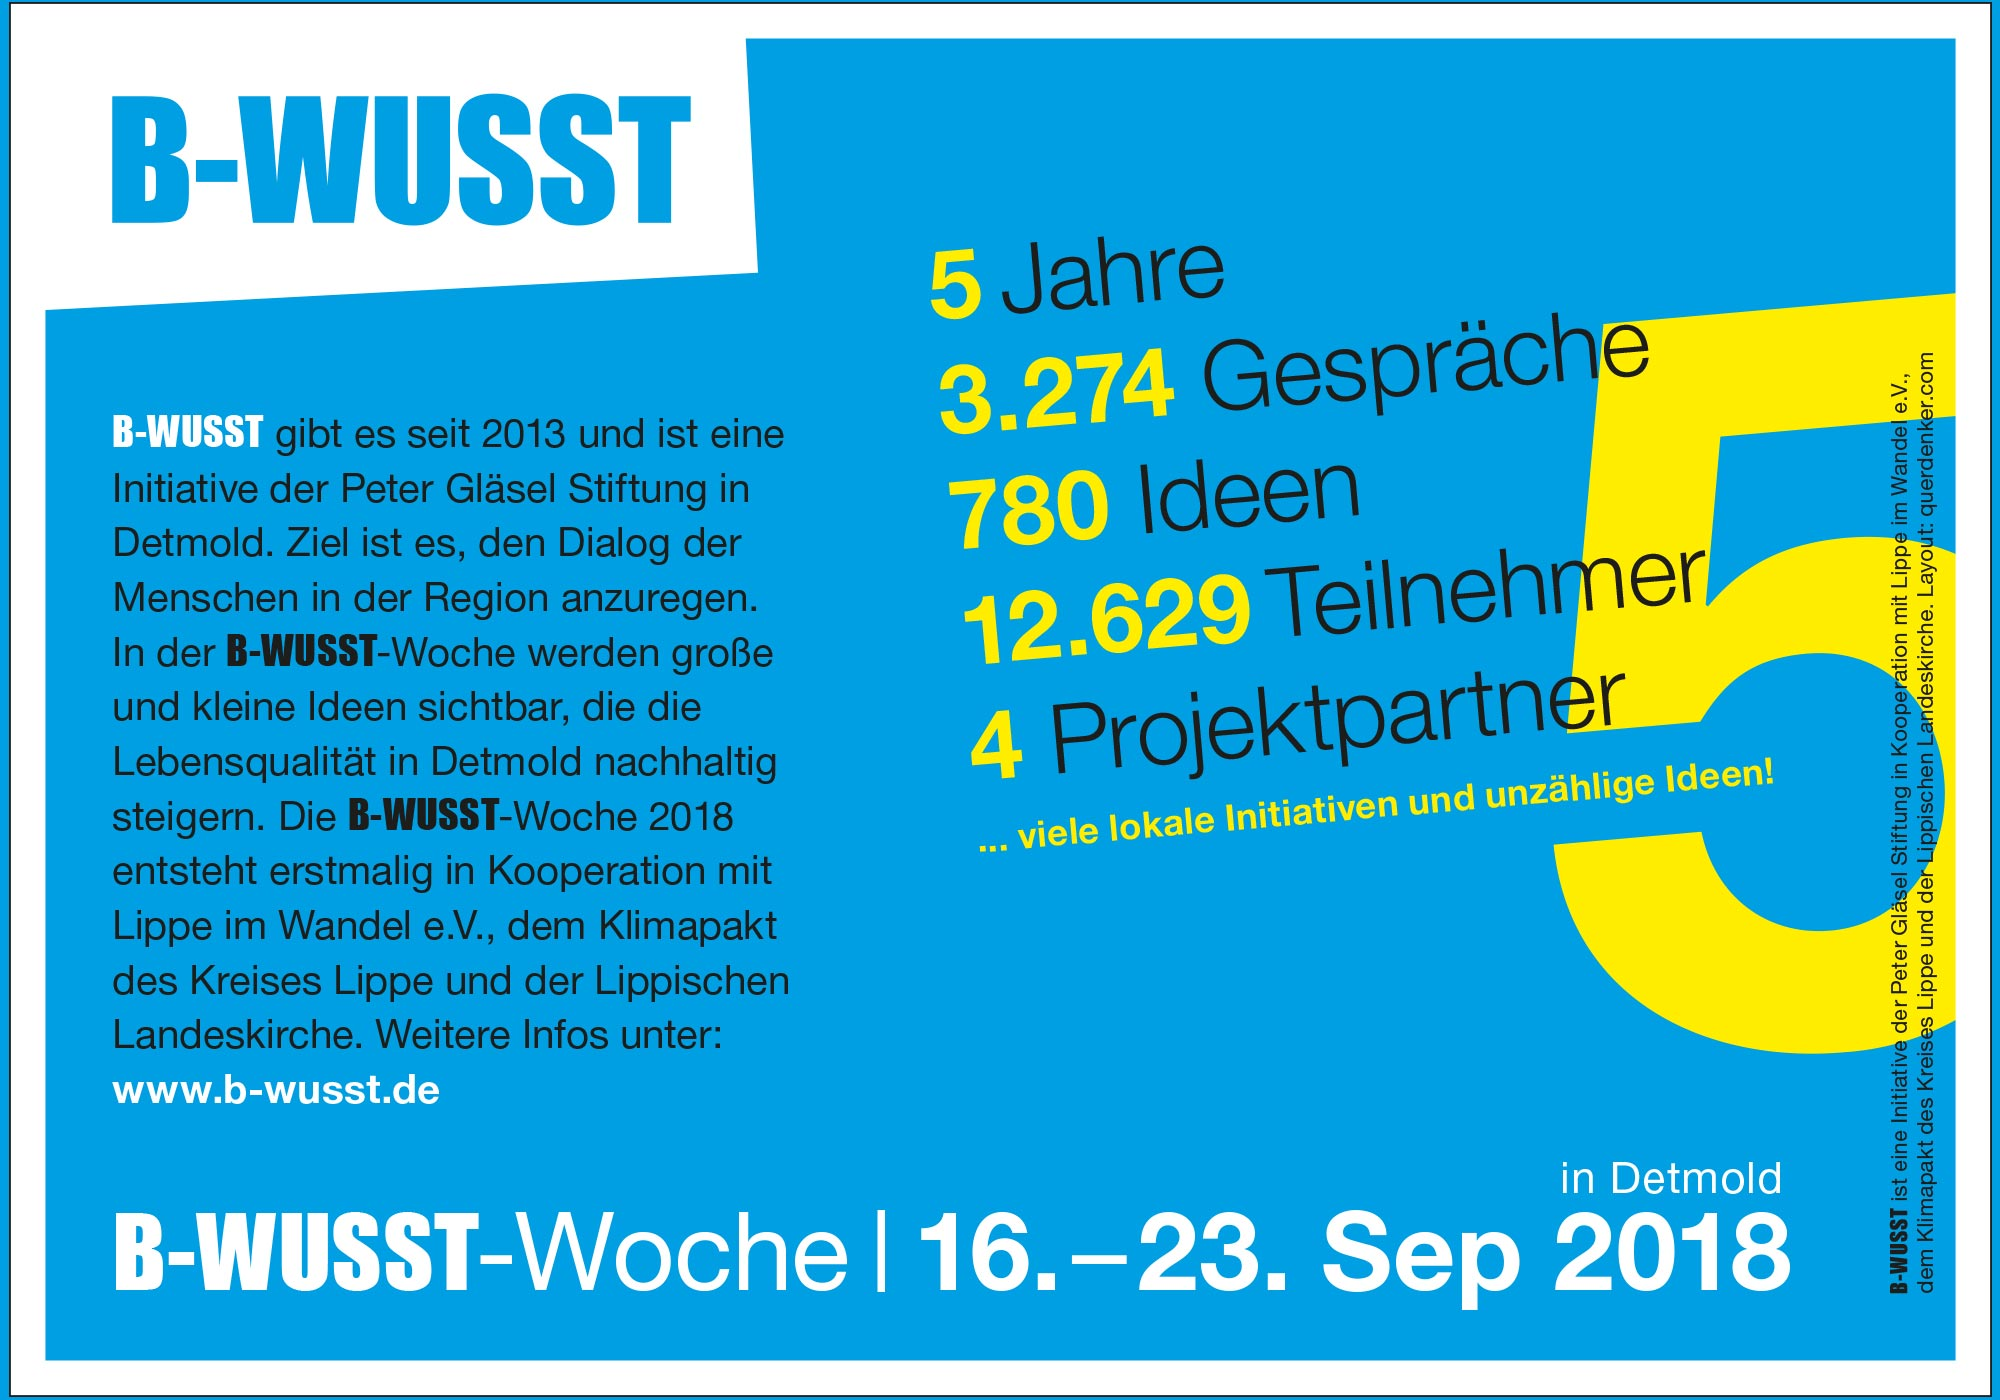 B-WUSST 2018 Blende Start (Grafikblende)